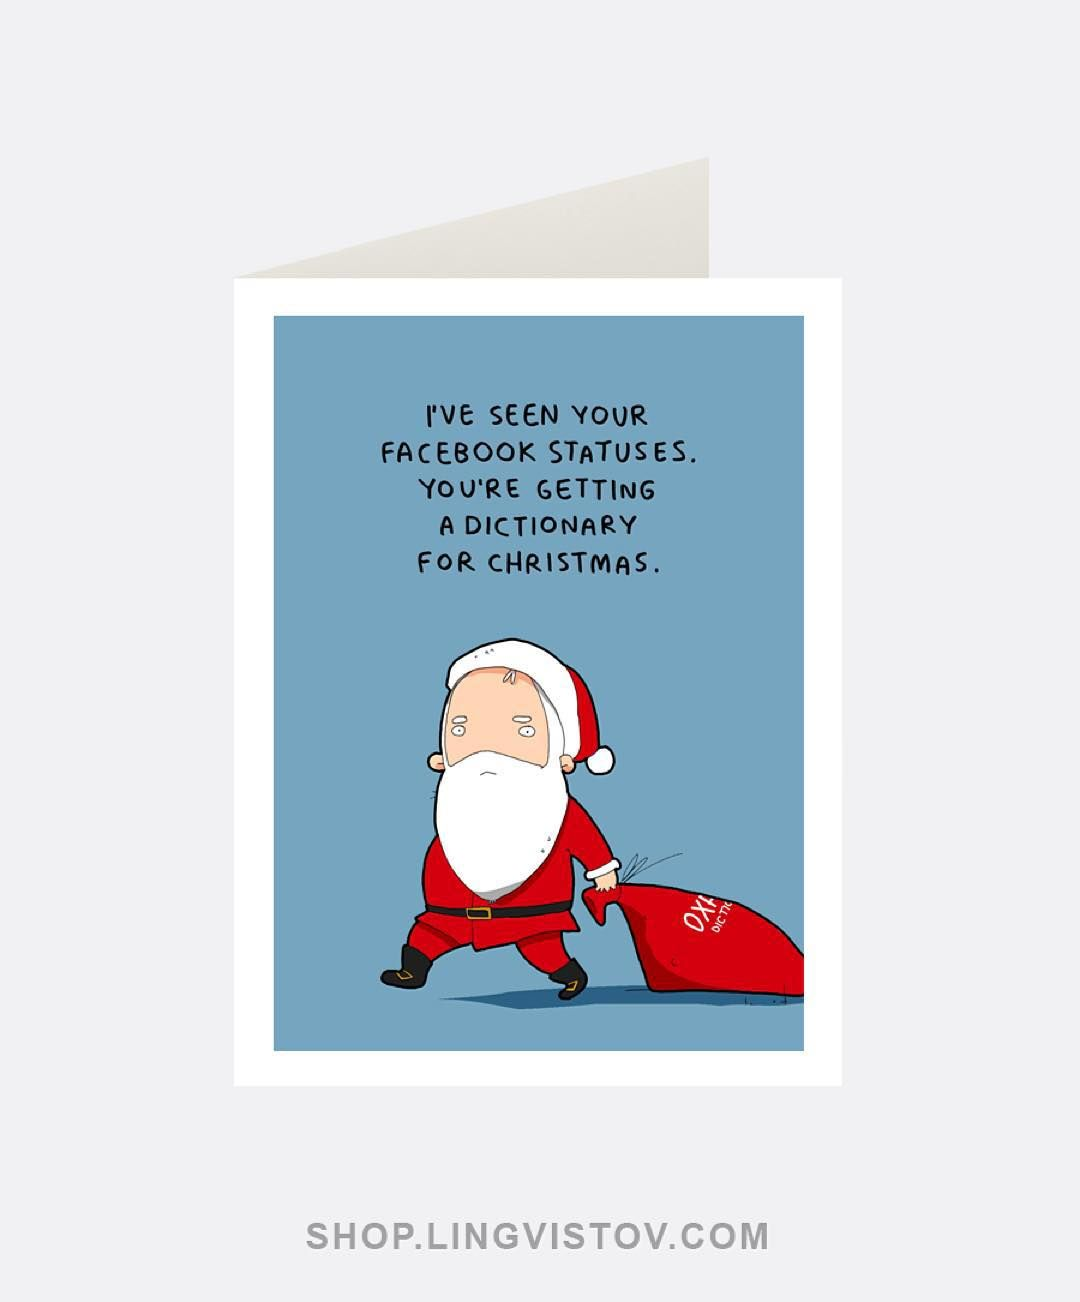 Shopngvistov funny christmas greeting cards doodles shopngvistov funny christmas greeting cards doodles drawing kristyandbryce Image collections